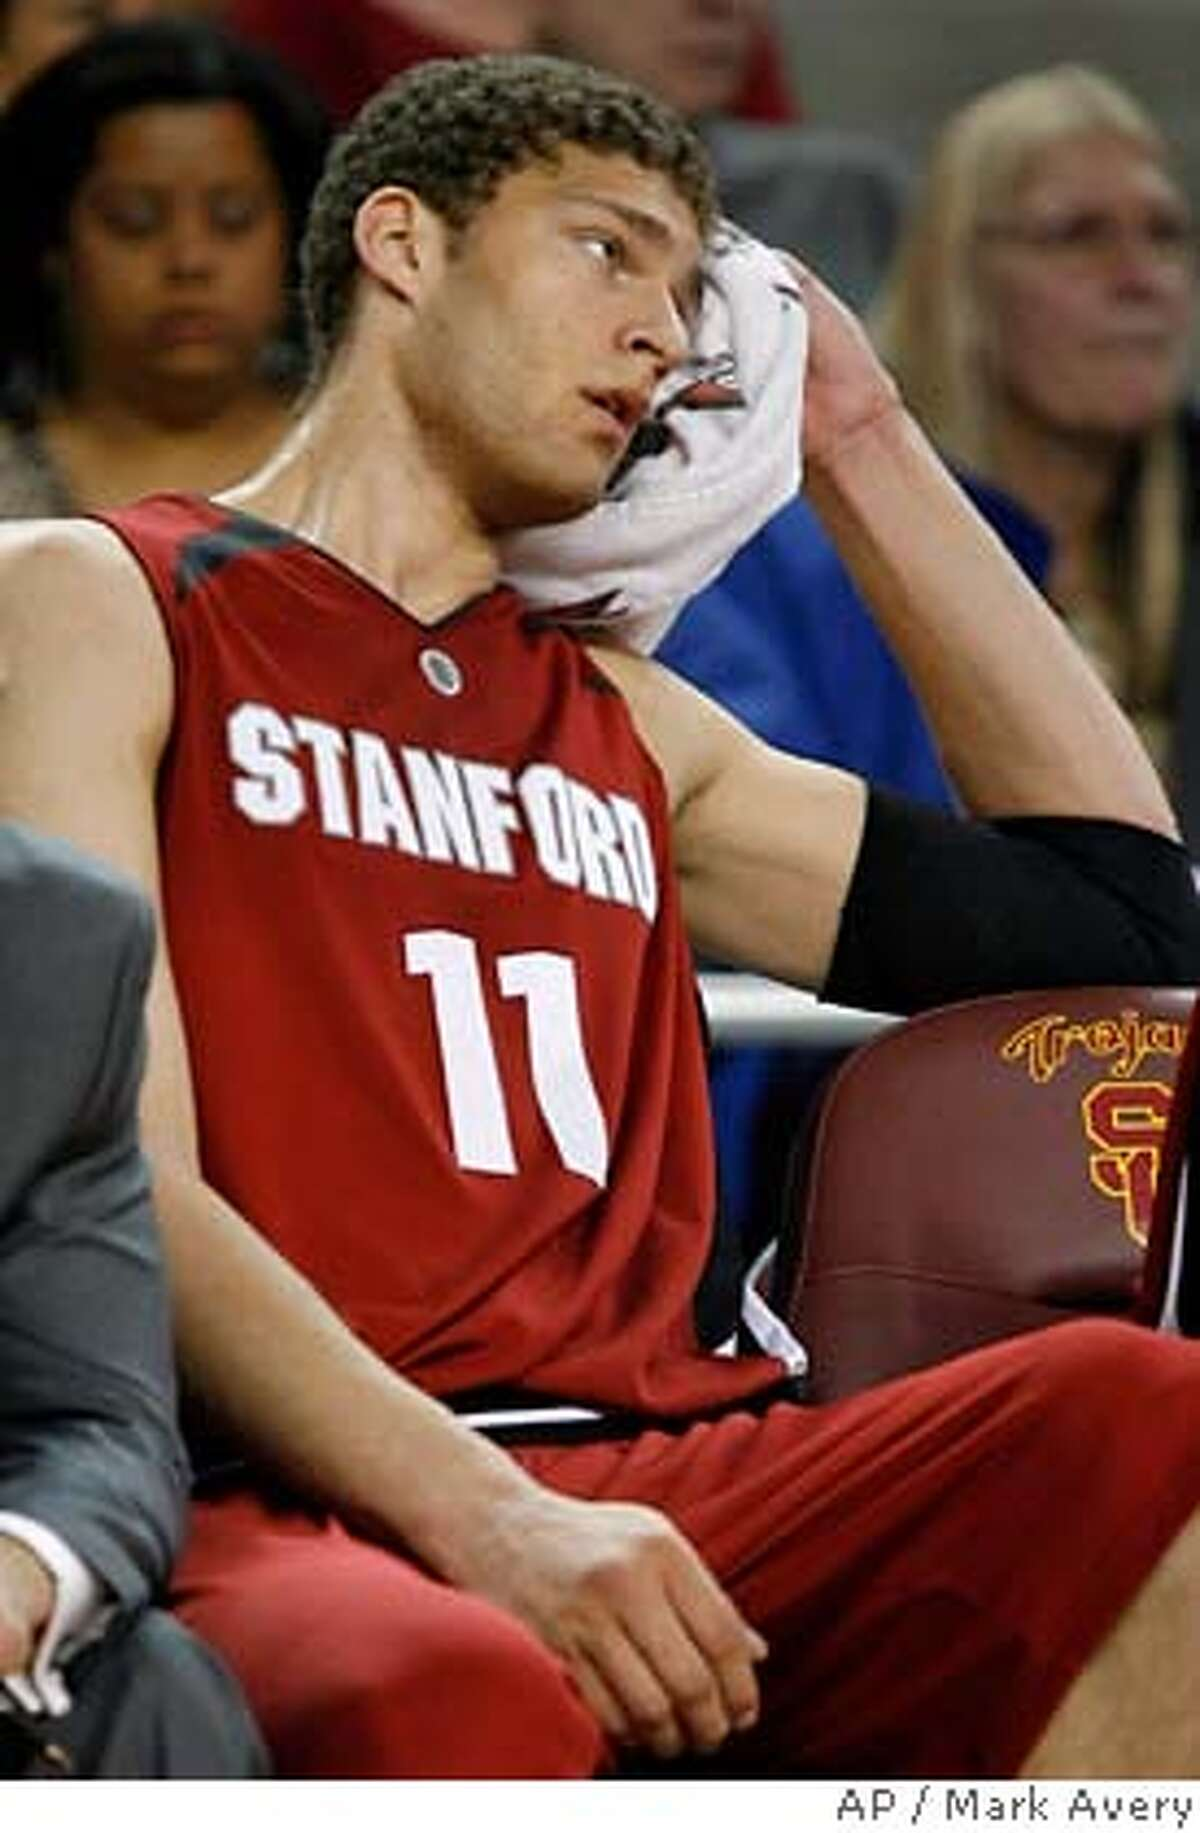 ###Live Caption:Stanford forward Brook Lopez sits on the bench in the closing minutes of Stanford's 77-64 loss to Southern California in a basketball game in Los Angeles on Saturday, March 8, 2008. (AP Photo/Mark Avery)###Caption History:Stanford forward Brook Lopez sits on the bench in the closing minutes of Stanford's 77-64 loss to Southern California in a basketball game in Los Angeles on Saturday, March 8, 2008. (AP Photo/Mark Avery)###Notes:Brook Lopez###Special Instructions:EFE OUT